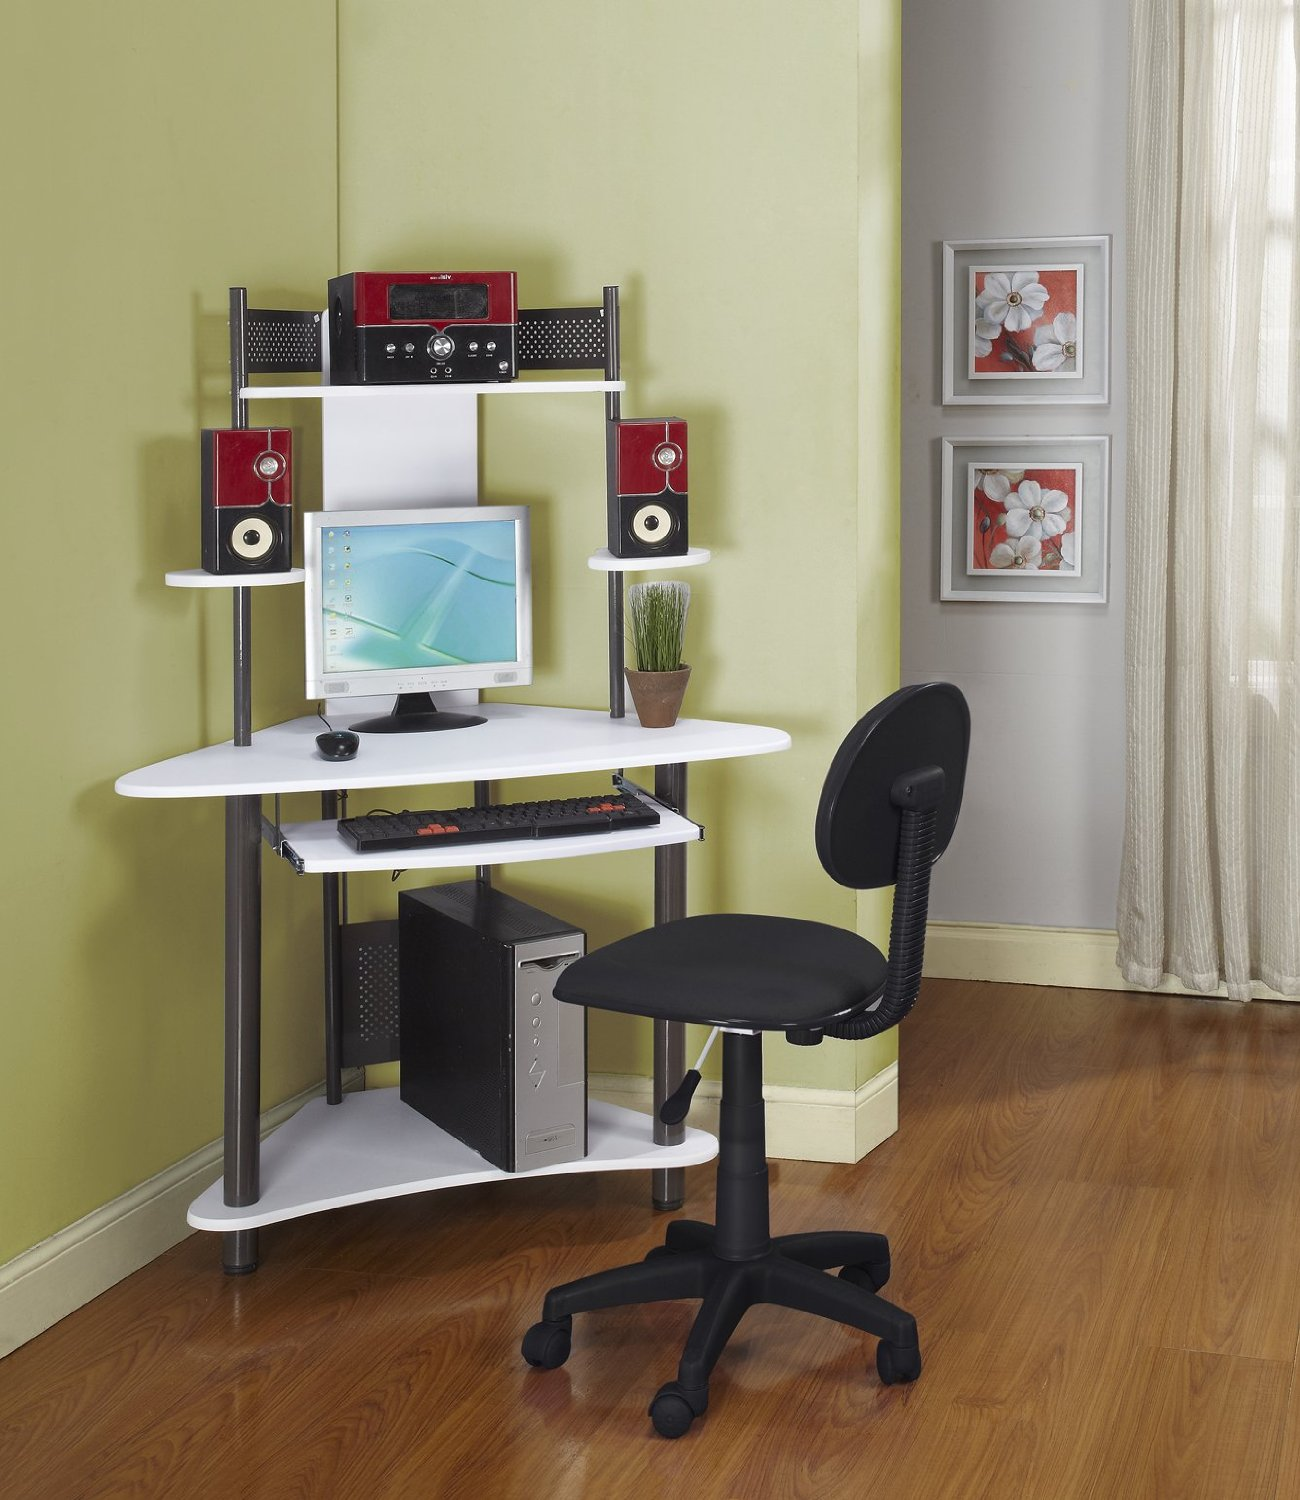 small corner desk for puter with top shelving units audio systems and sliding panel bedroom desk unit home